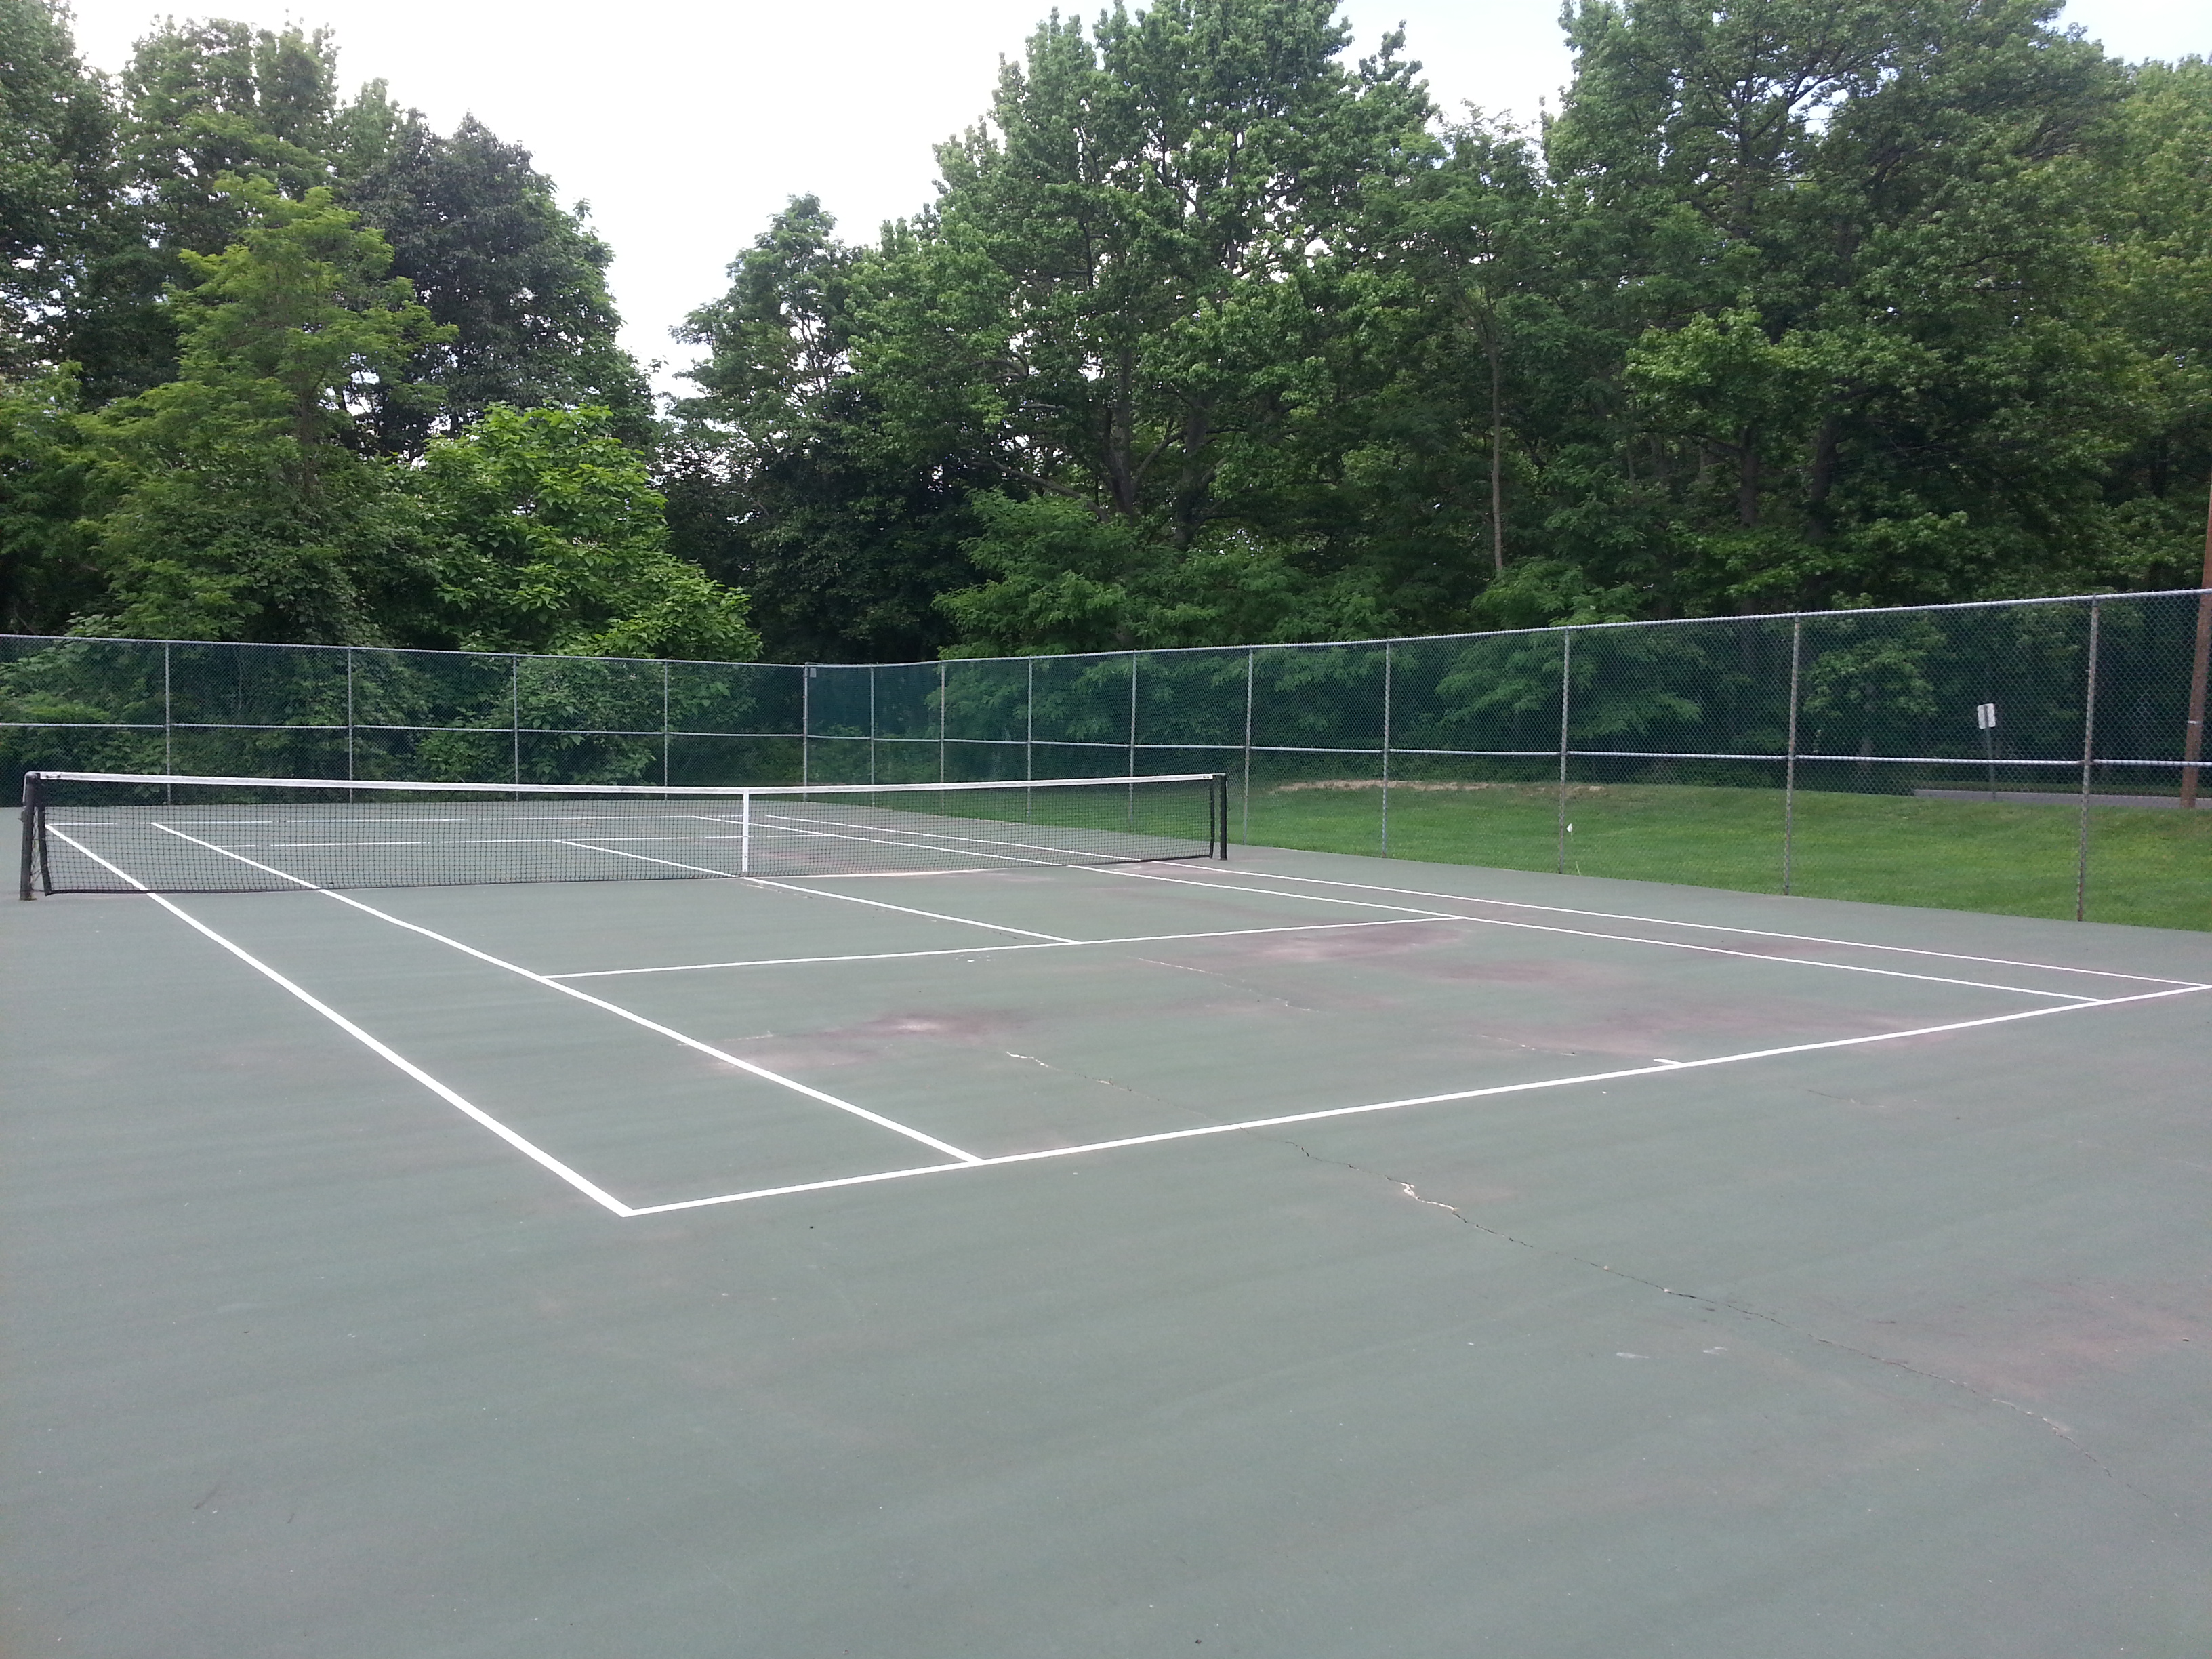 Tennis anyone?  In addition to a pool, Kimberly Woods has a tennis court.